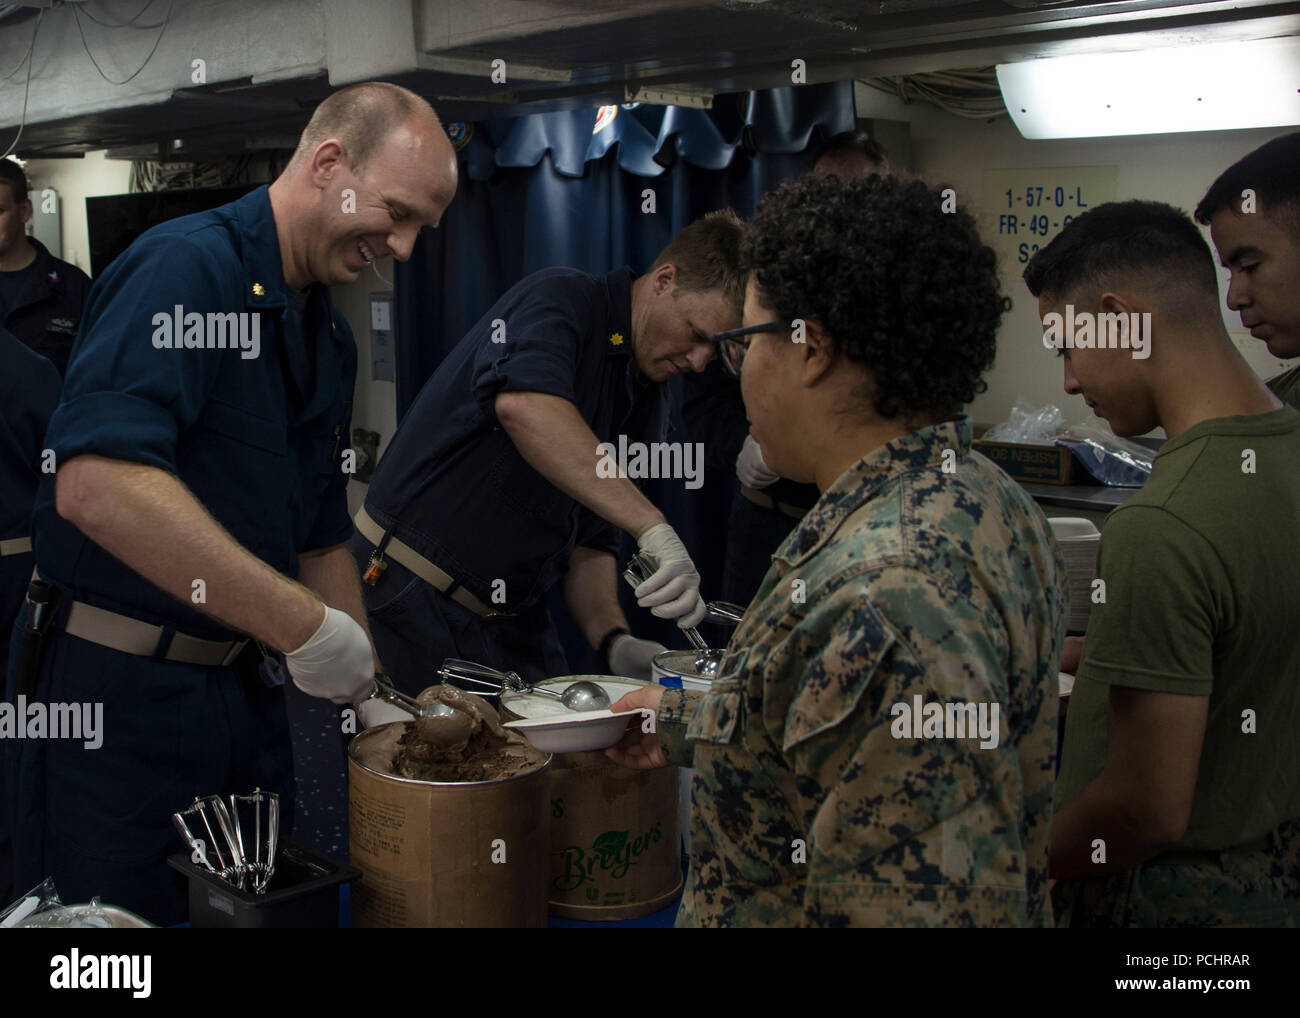 180727-N-ZK016-0004  ATLANTIC OCEAN (July 27, 2018) Officers serve ice cream to Sailors and Marines during an ice cream social on the messdecks aboard the Wasp-class amphibious assault ship USS Iwo Jima (LHD 7), July 27, 2018. Iwo Jima, homeported in Mayport, Florida, is conducting naval operations in the U.S. 6th Fleet area of operations in support of U.S. national security interests in Europe and Africa. (U.S. Navy photo by Mass Communication Specialist 3rd Class Joe J. Cardona Gonzalez/Released) Stock Photo